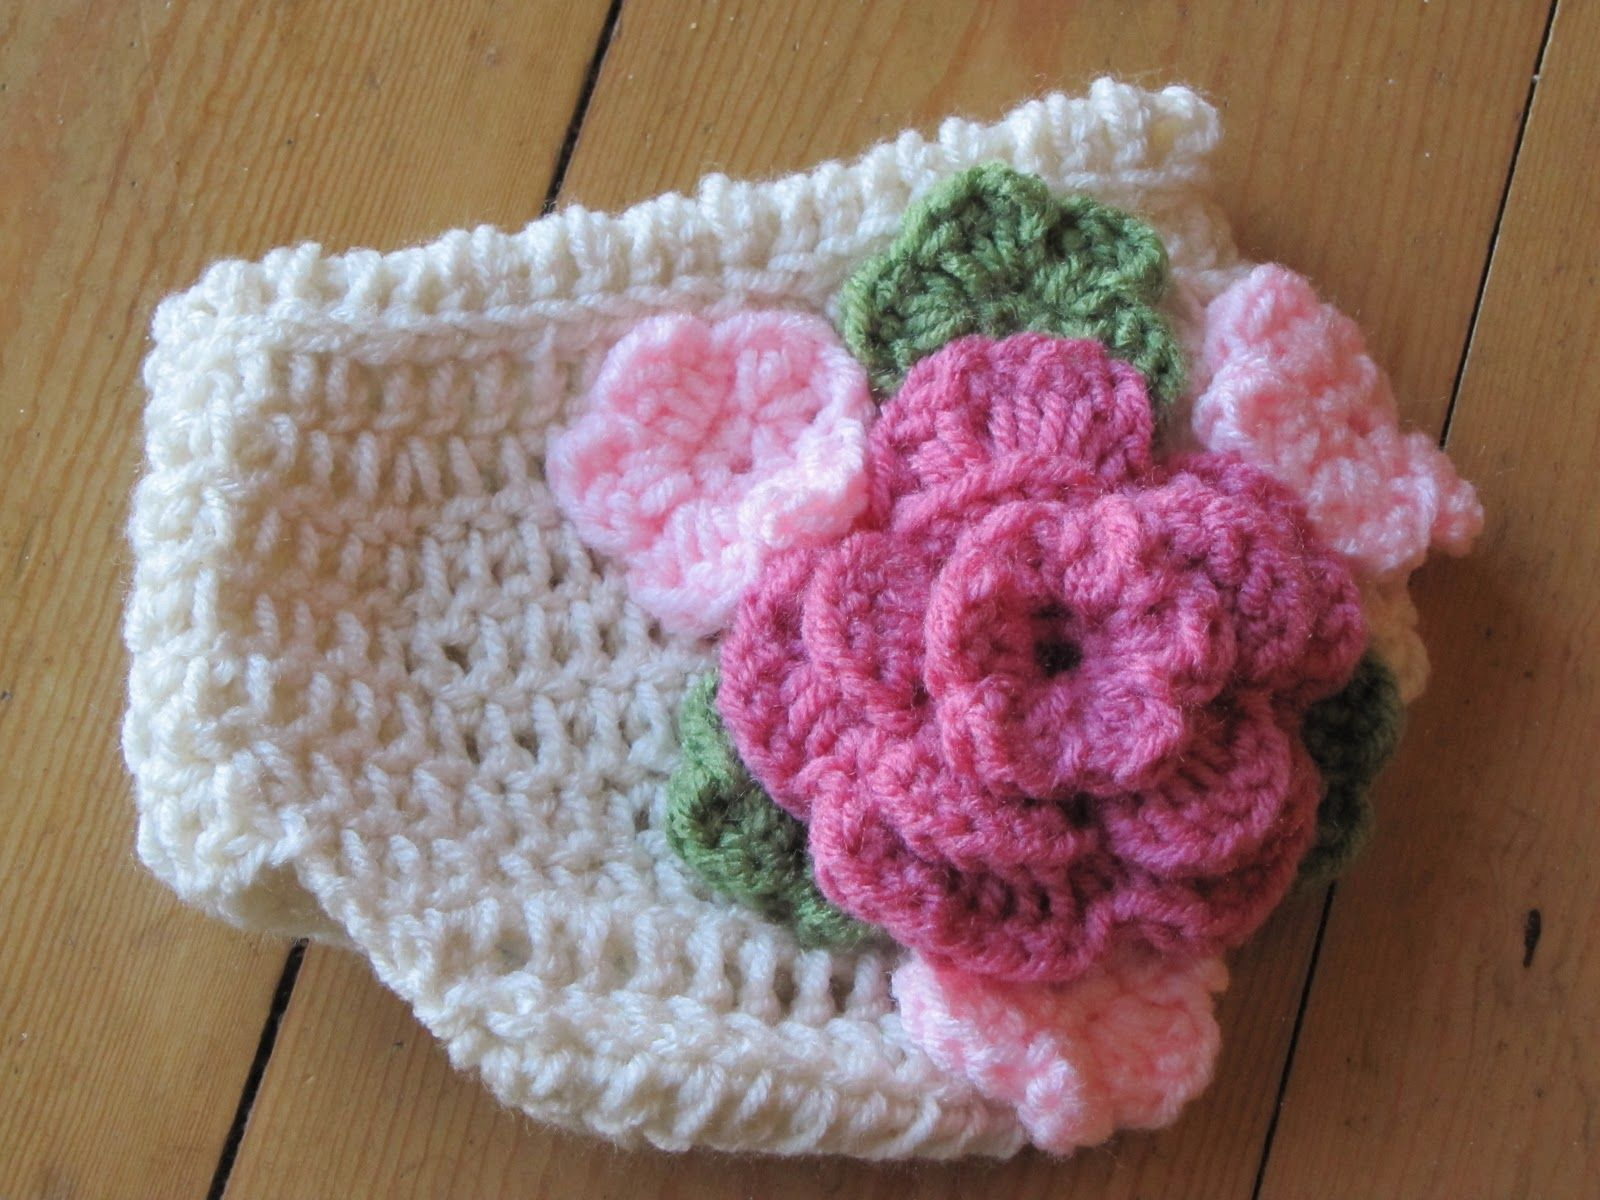 Crochet diaper cover pattern - Cloth Diapers Parenting Community ...